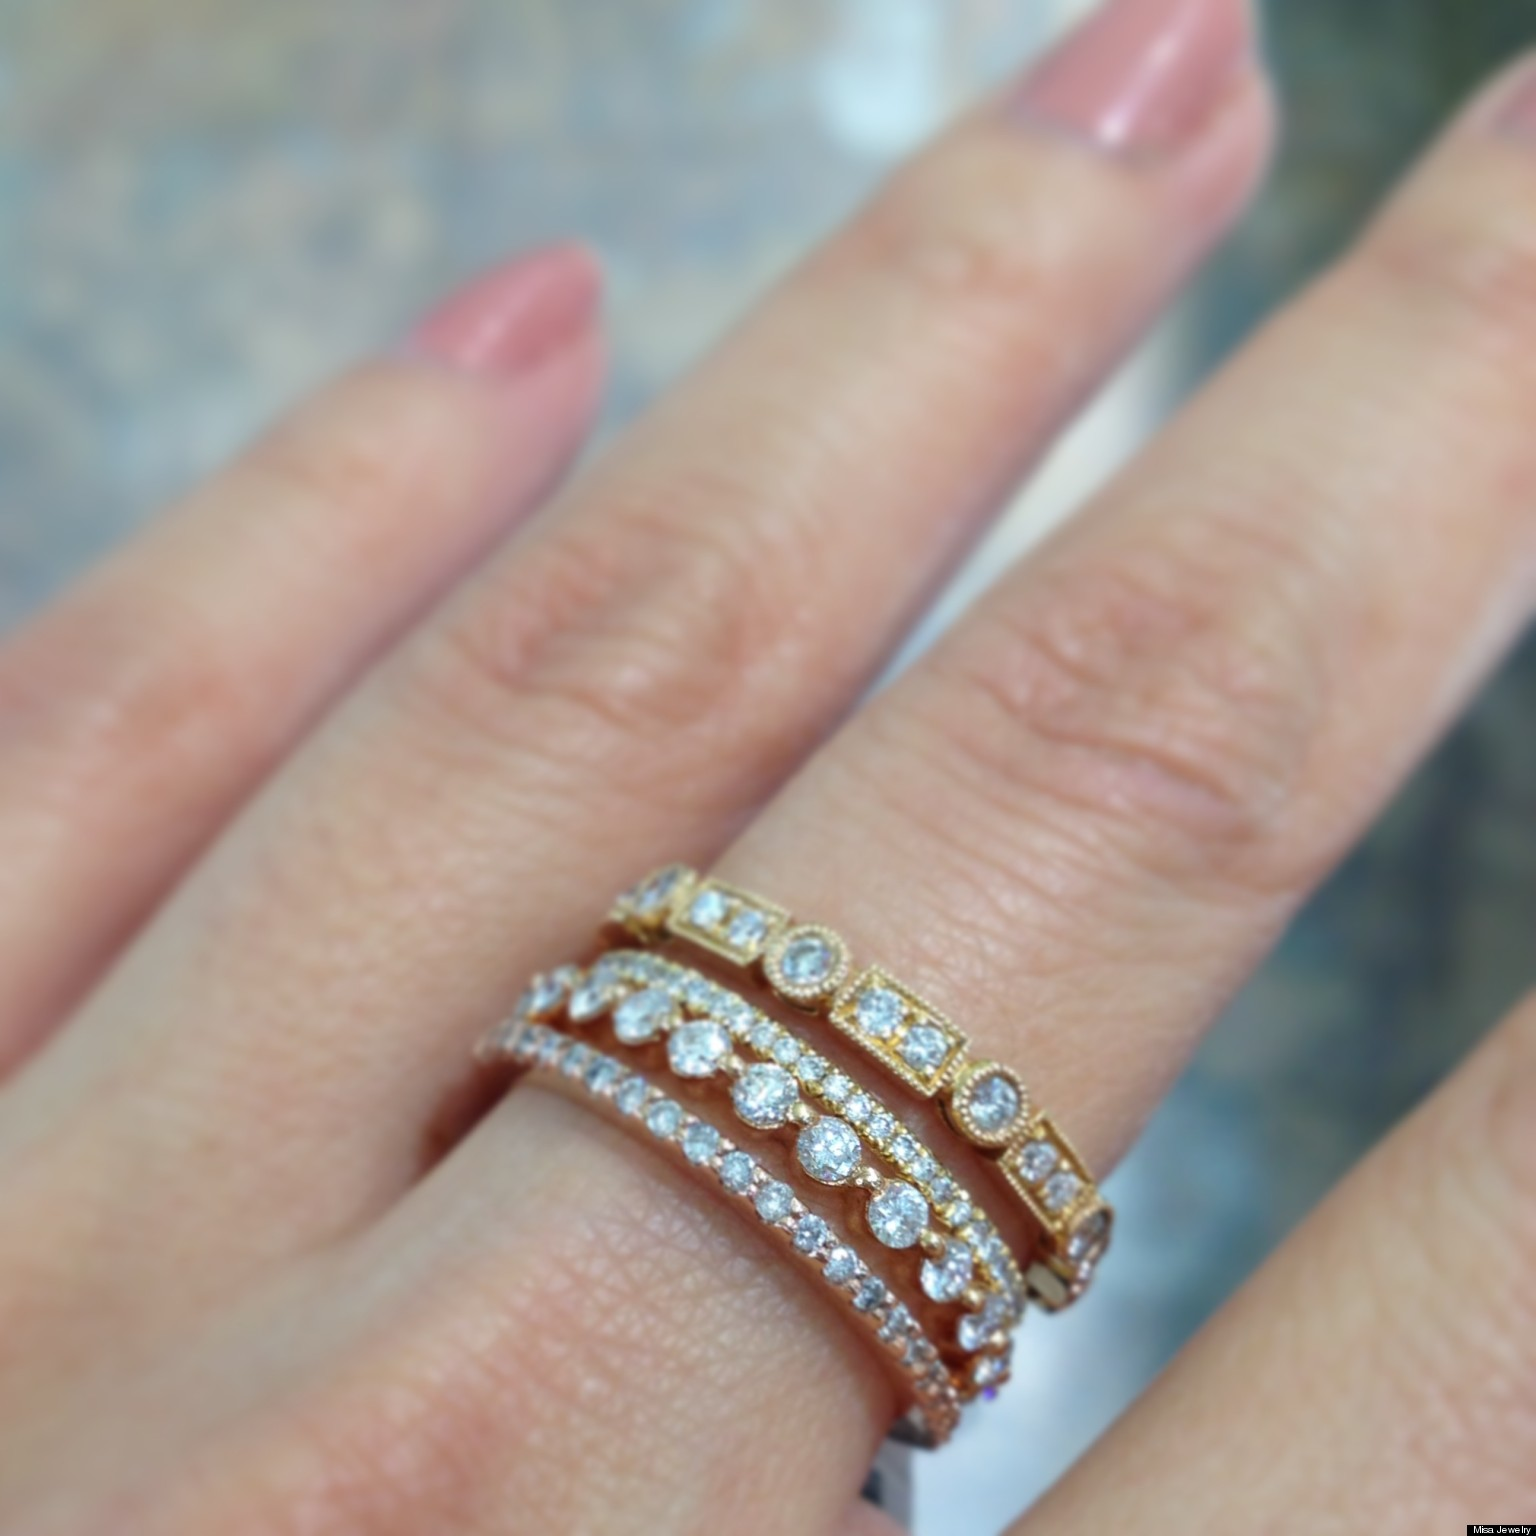 stackable wedding bands n wedding sets Stackable Wedding Bands Are One Of Our Favorite Jewelry Trends PHOTOS HuffPost